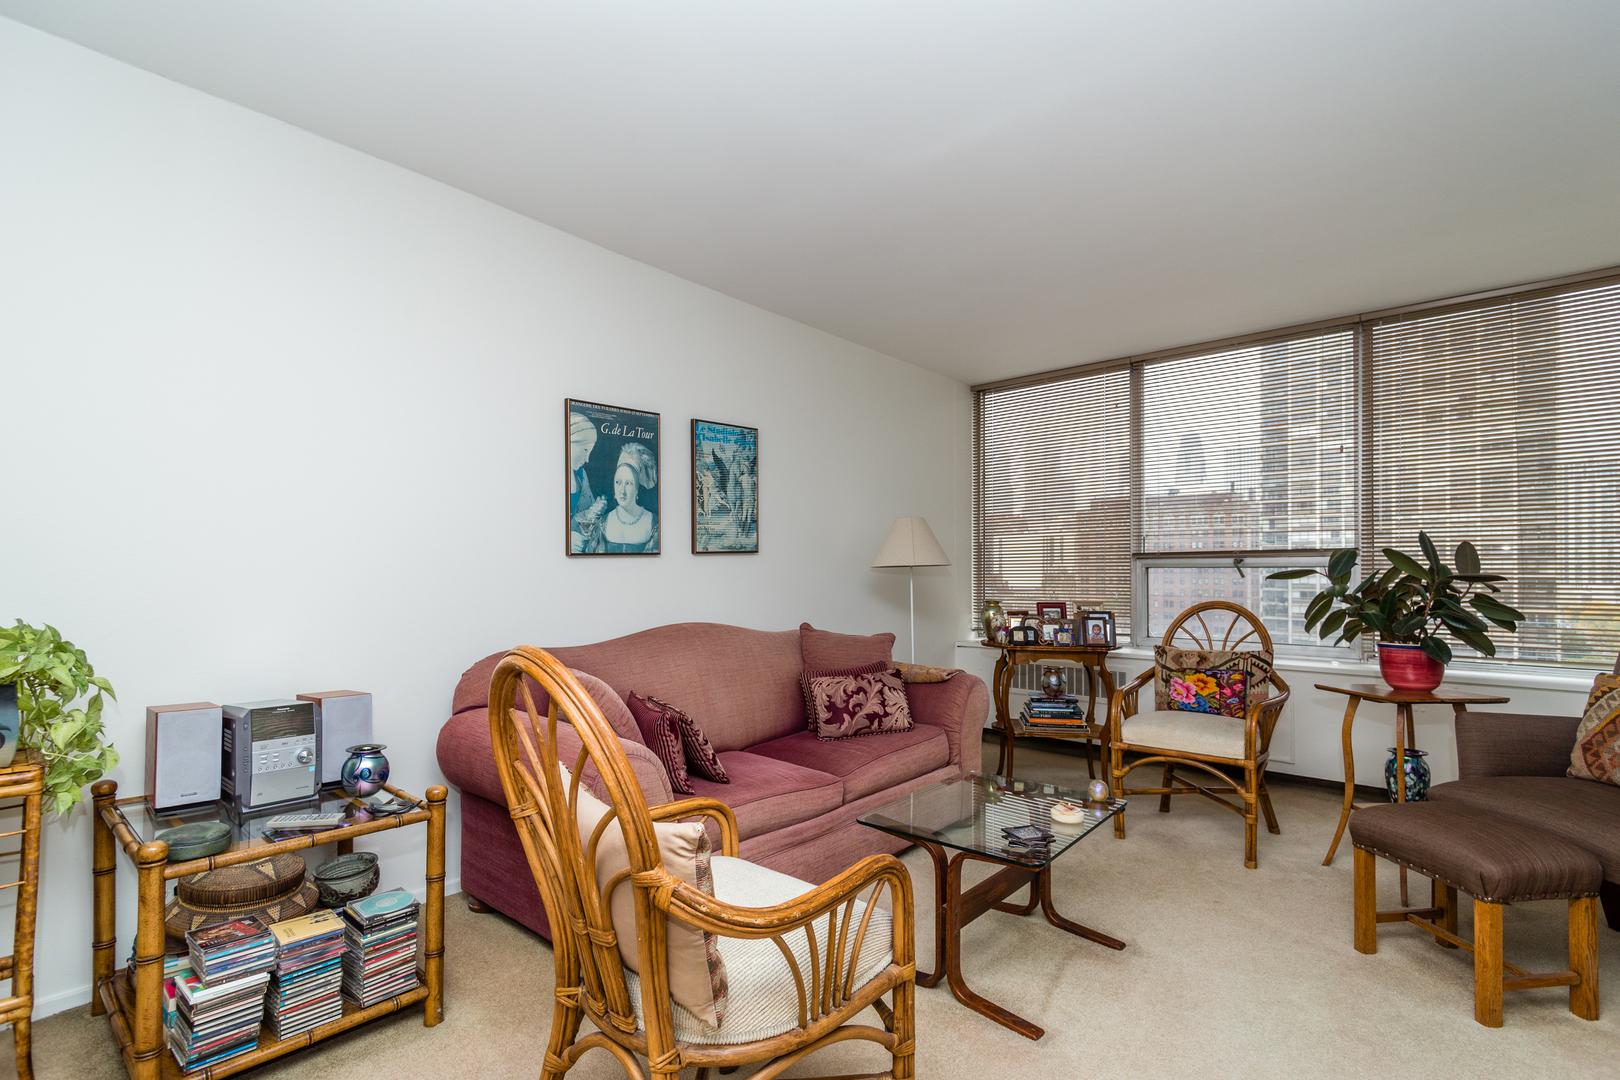 70 W Burton PL Unit #1007, Chicago, IL, 60610, condos and townhomes for sale